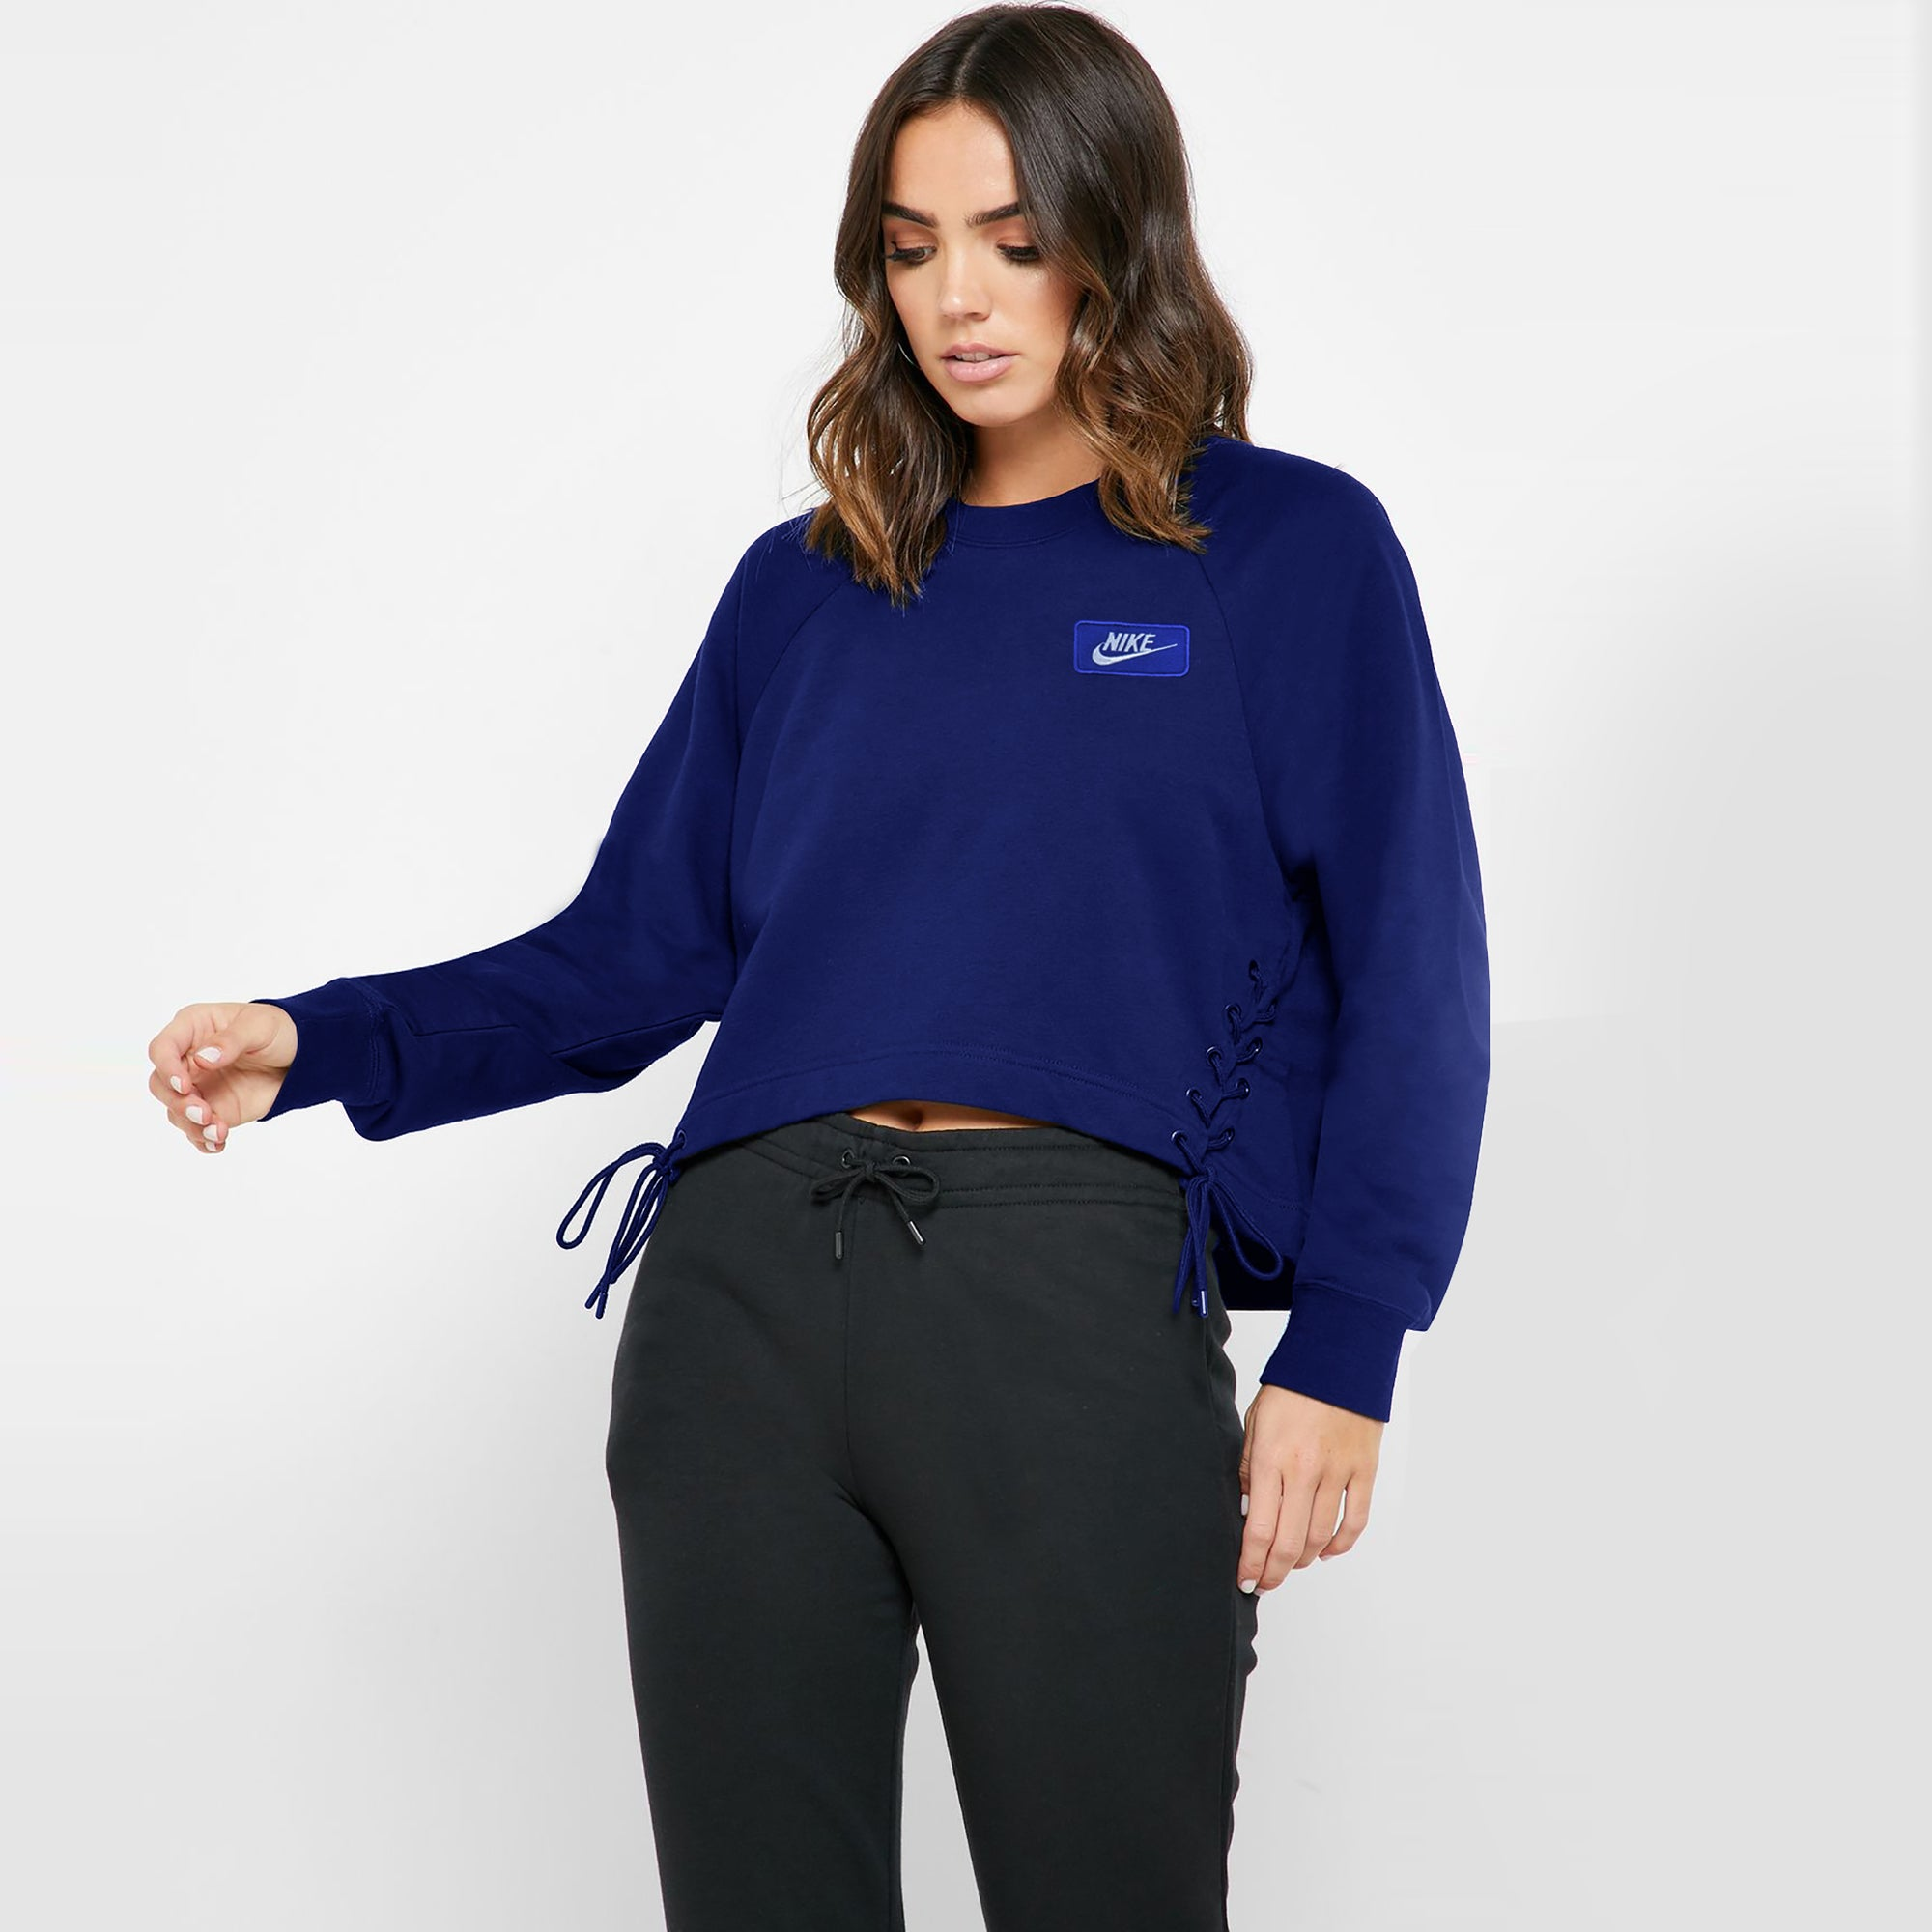 NK Terry Fleece Raglan Sleeve Crop Sweatshirt For Women-Dark Royal Blue-SP1145